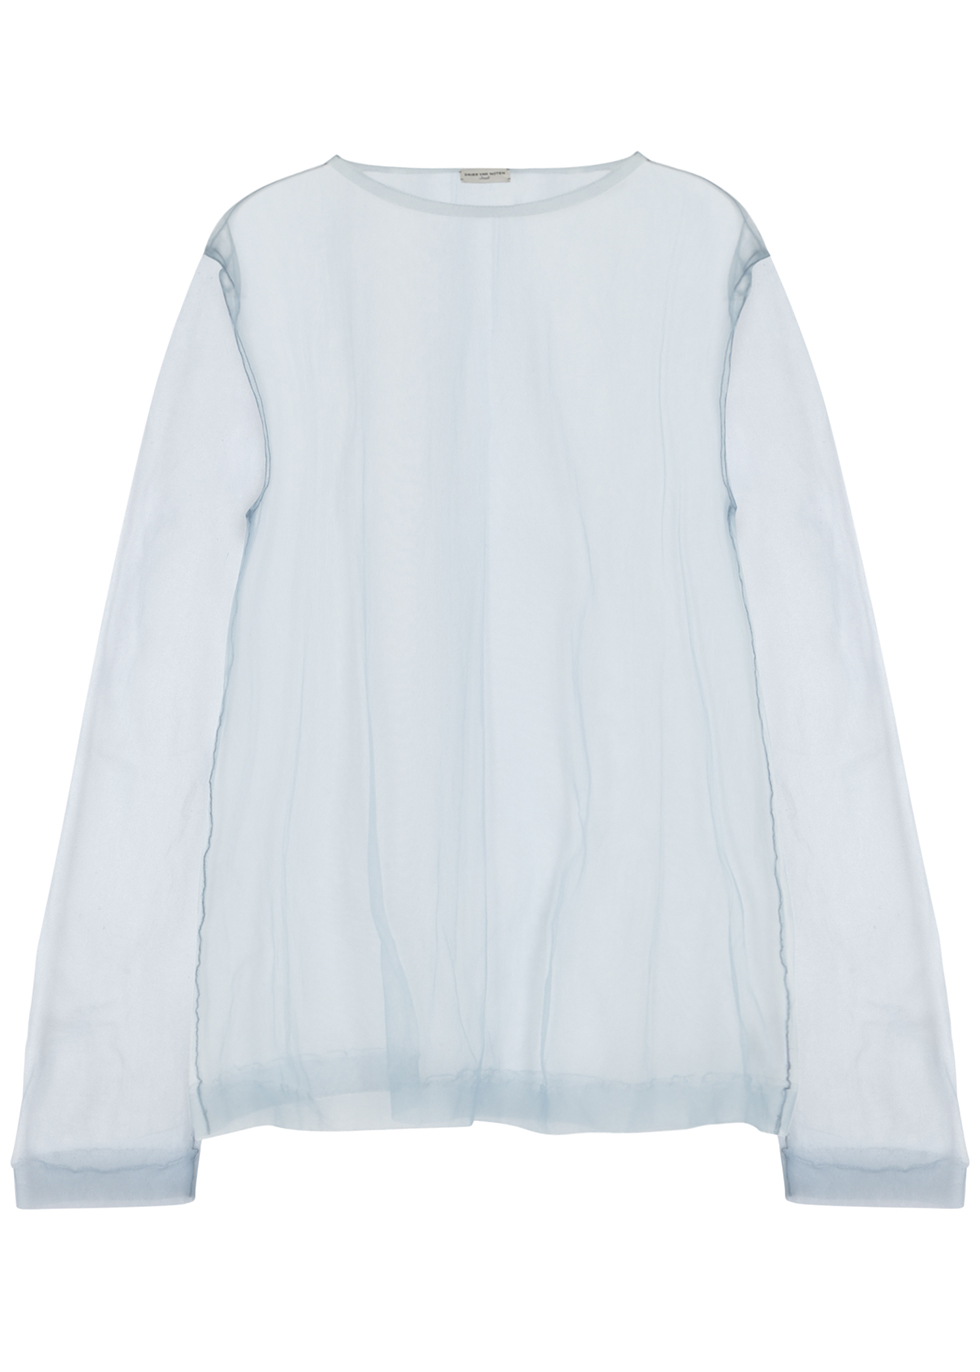 Neliza light blue tulle top - Dries Van Noten